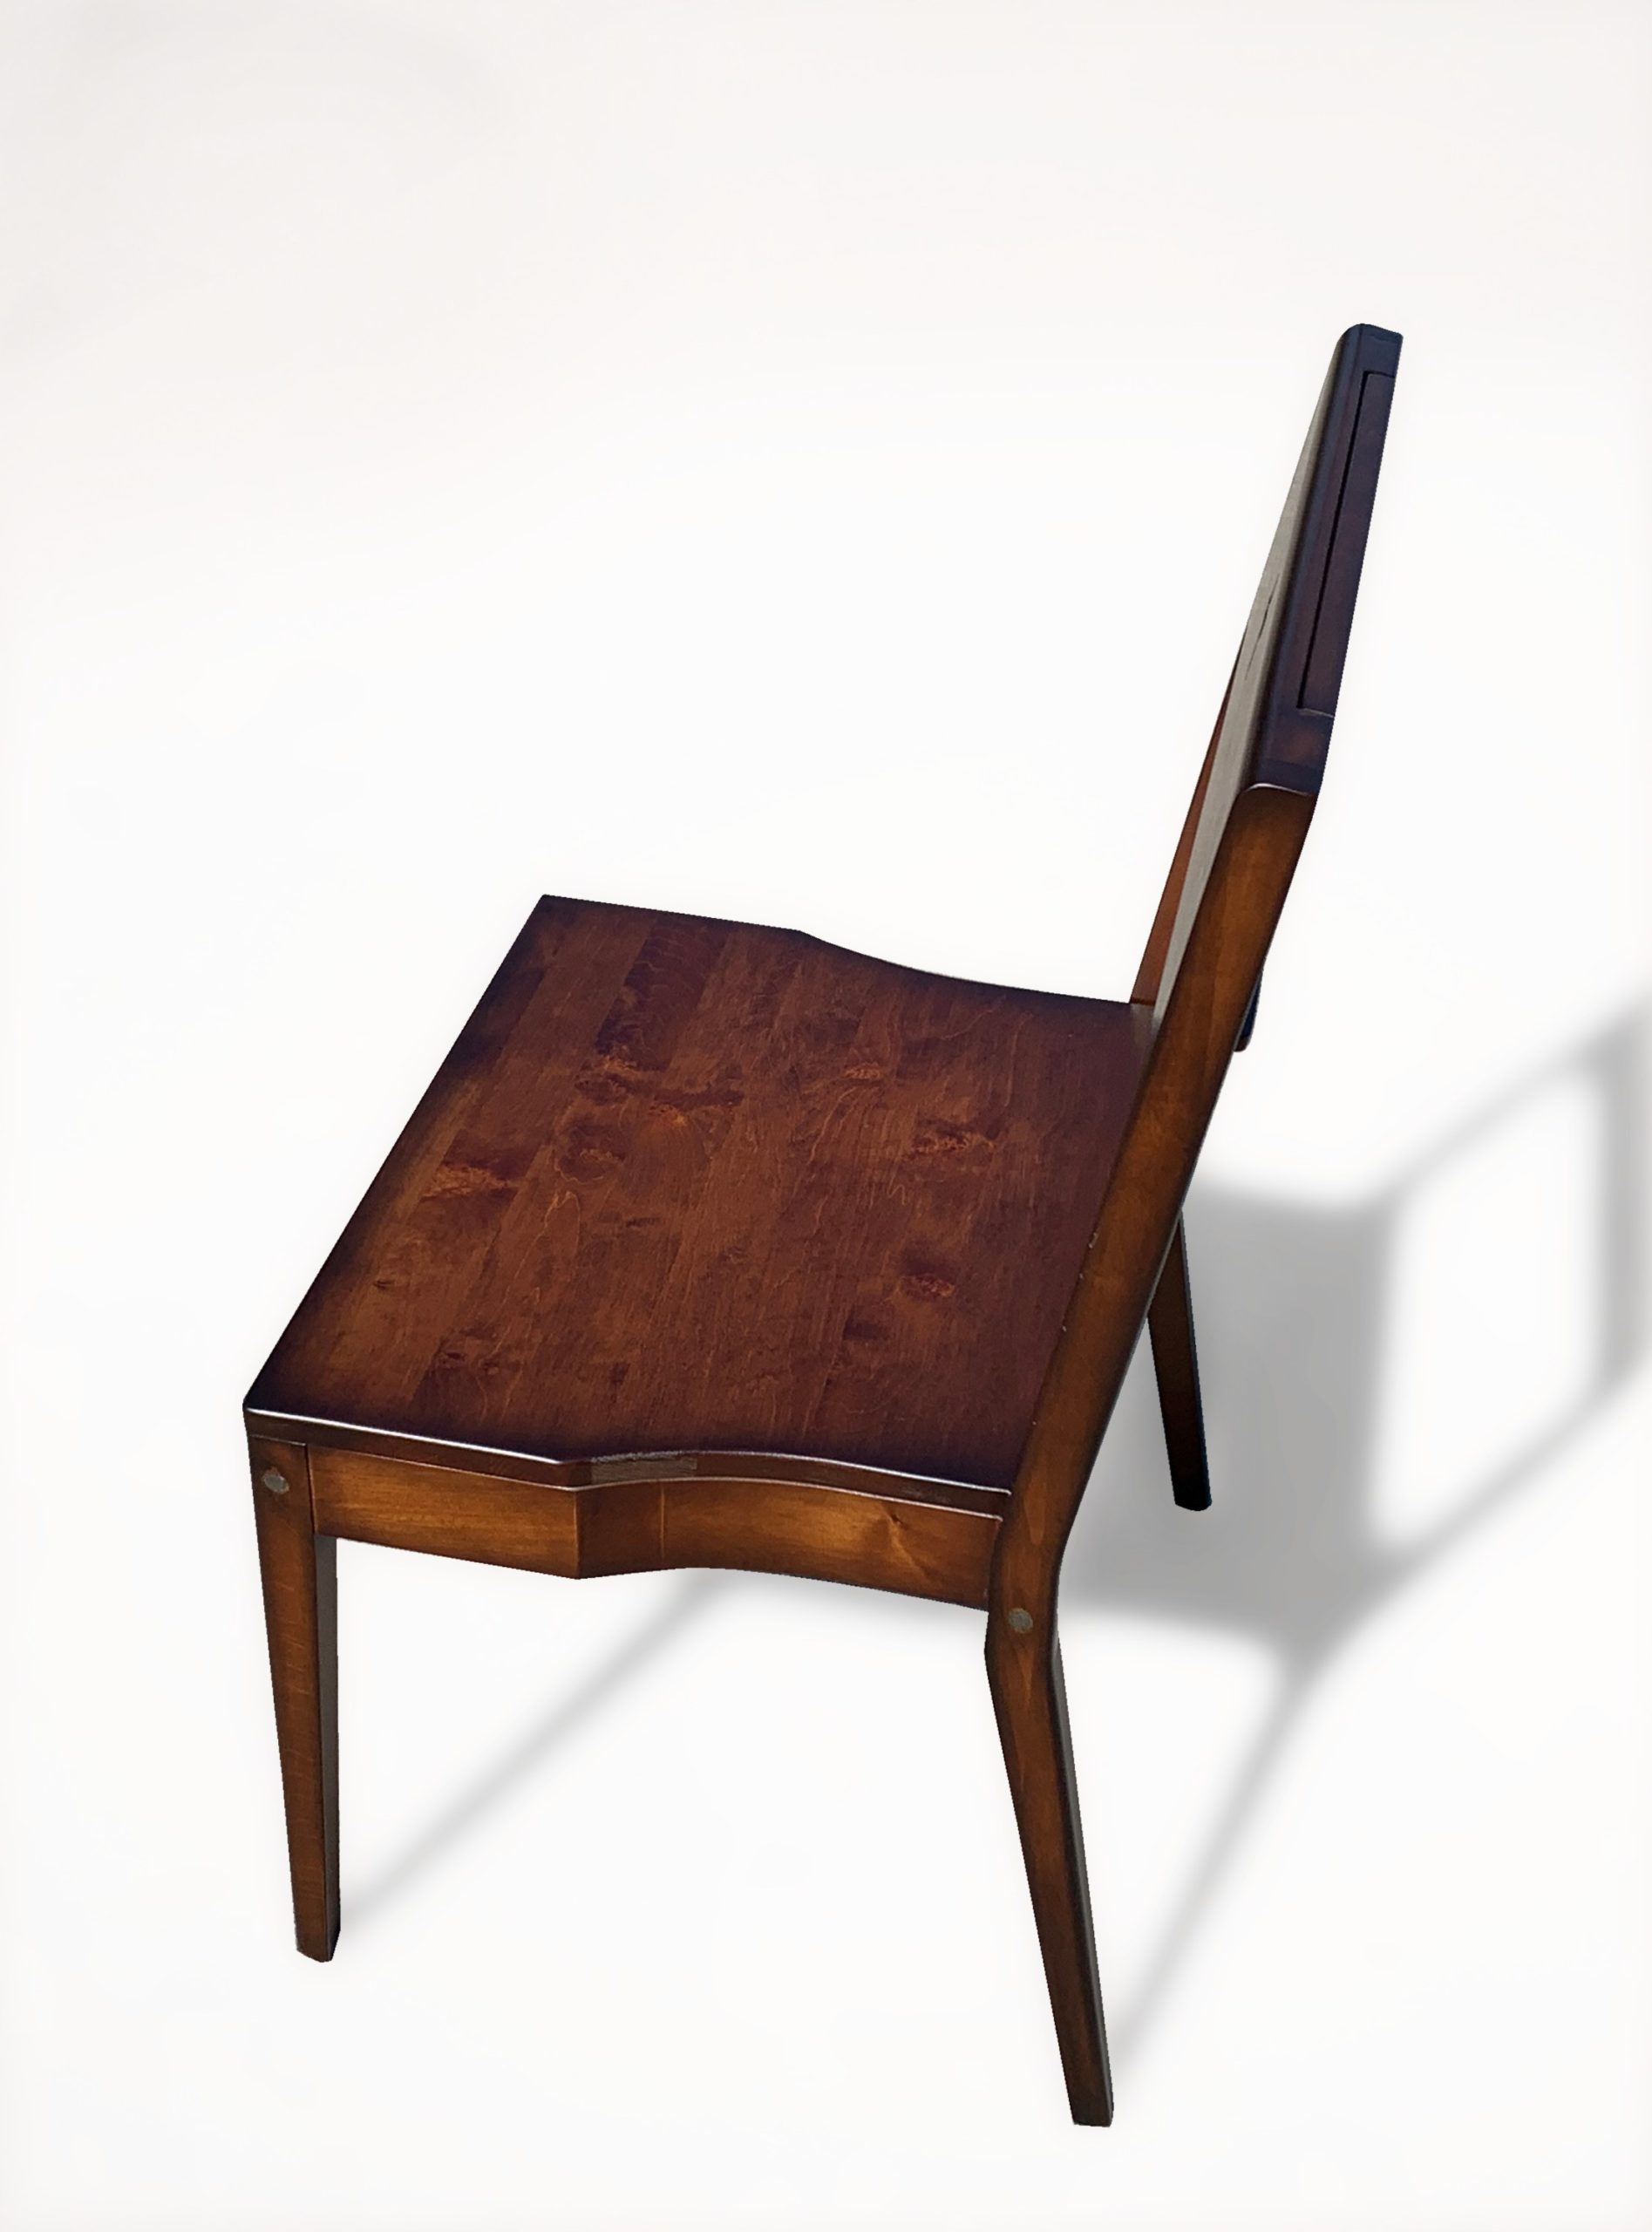 Wooden Zoe church chair made of alder wood - side view..